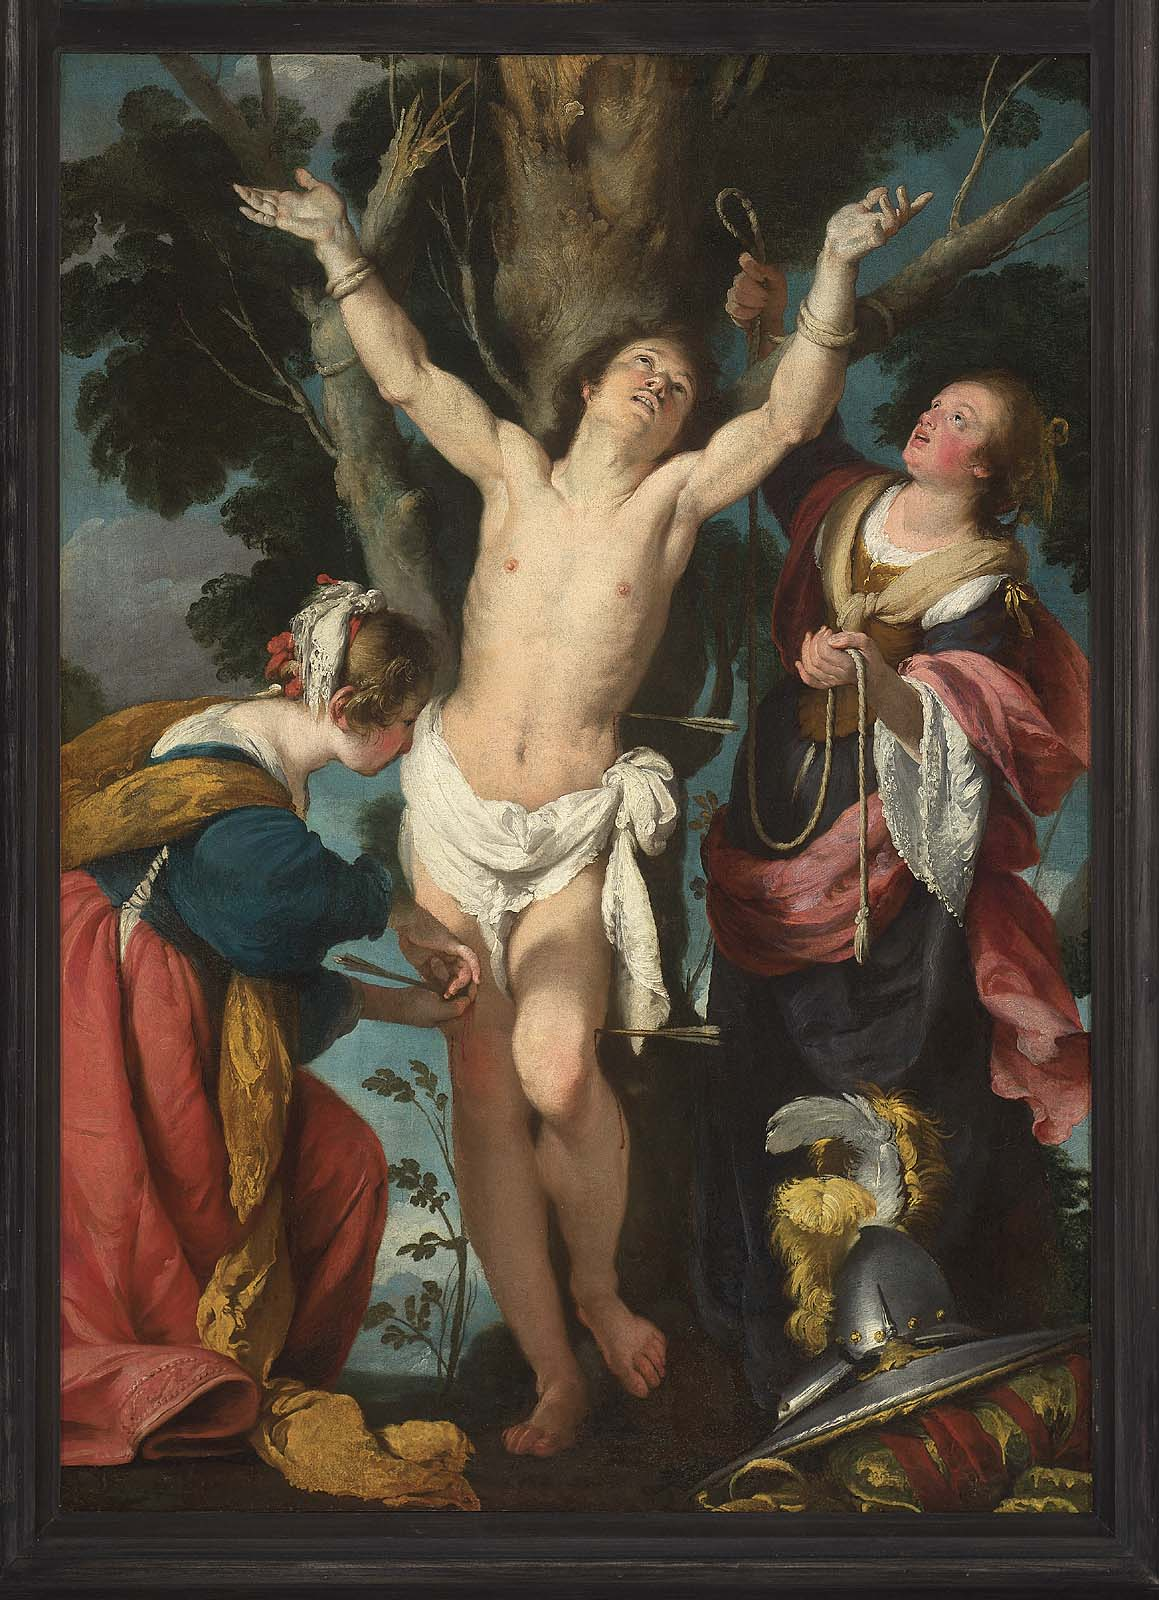 Saint Sebastian Tended By Saint Irene And Her Maid